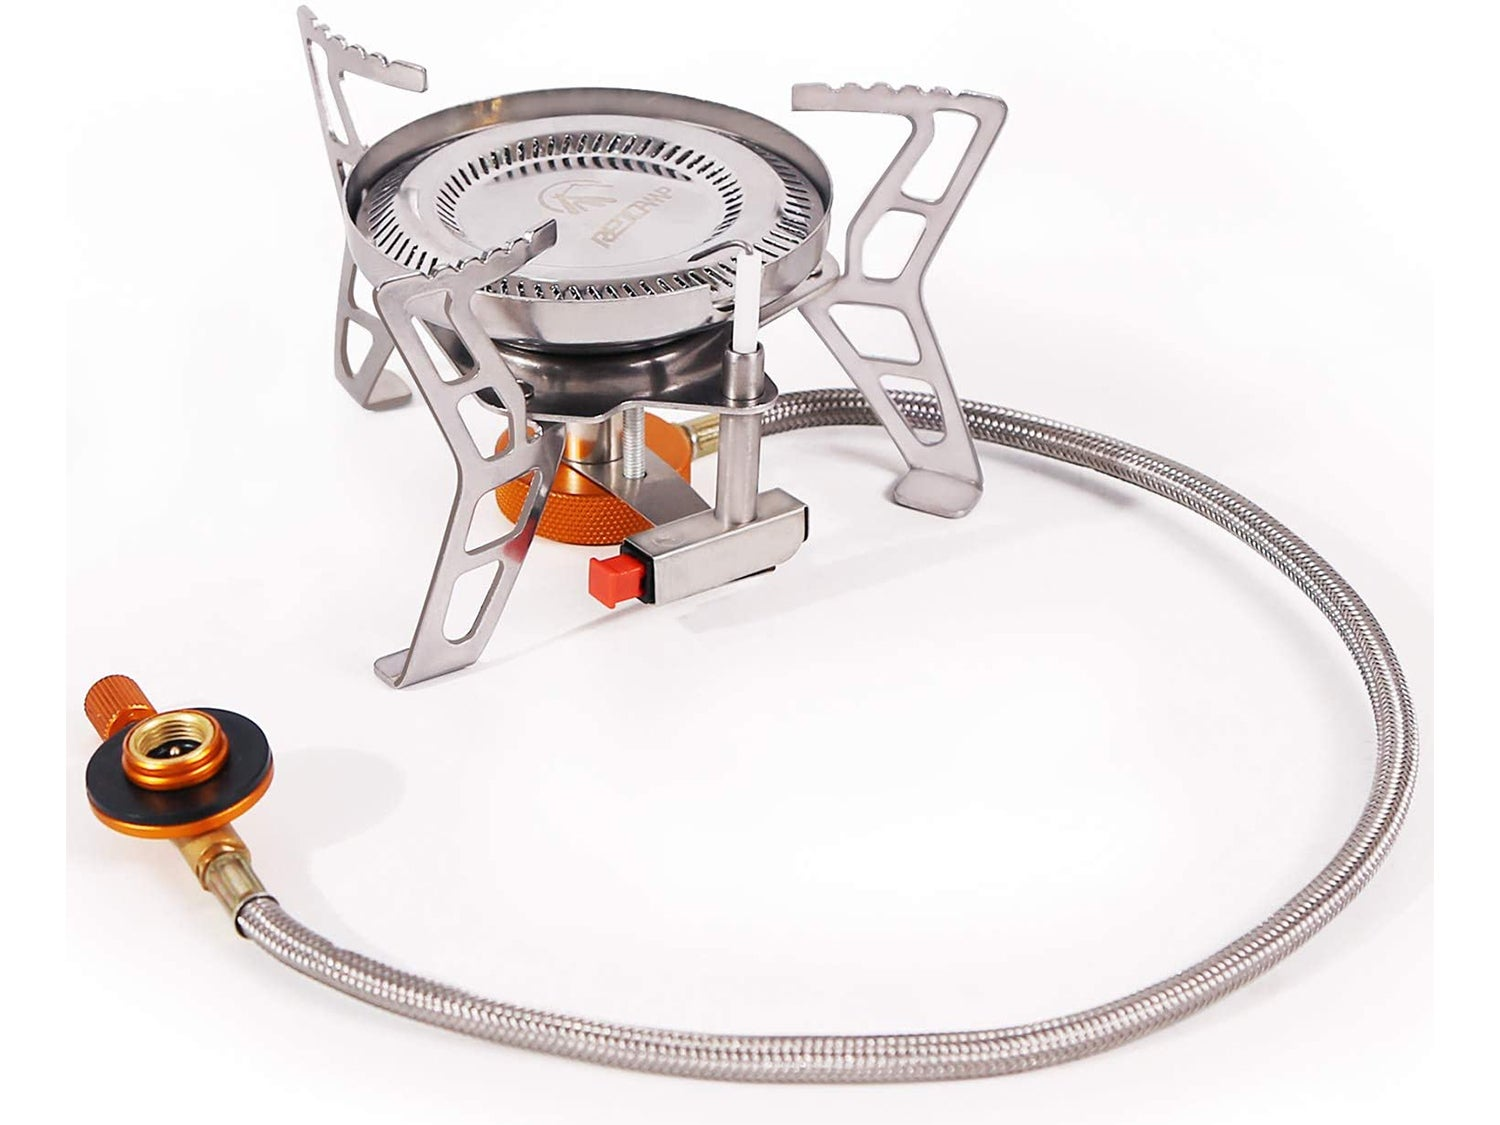 REDCAMP windproof portable backpacking stove